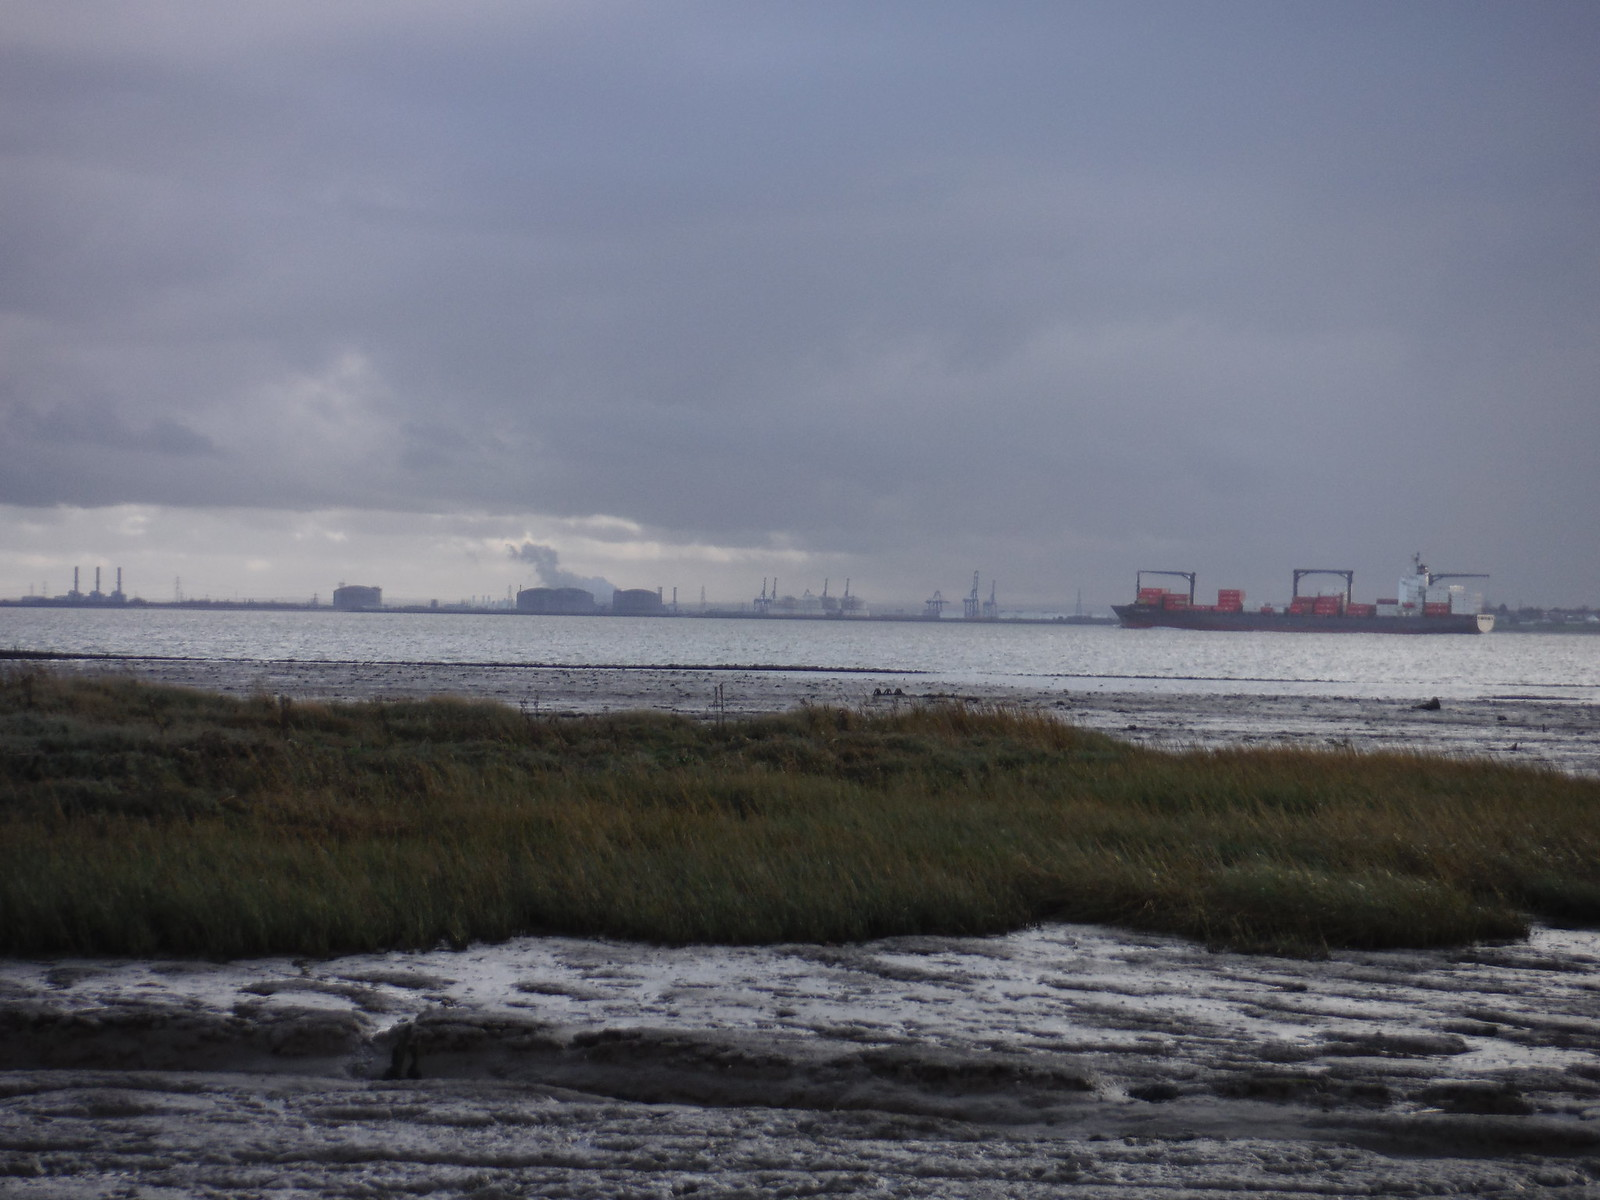 Ships on the Thames & Isle of Grain, from Leigh Beck Marsh SWC Walk 258 Benfleet Circular (via Canvey Island)